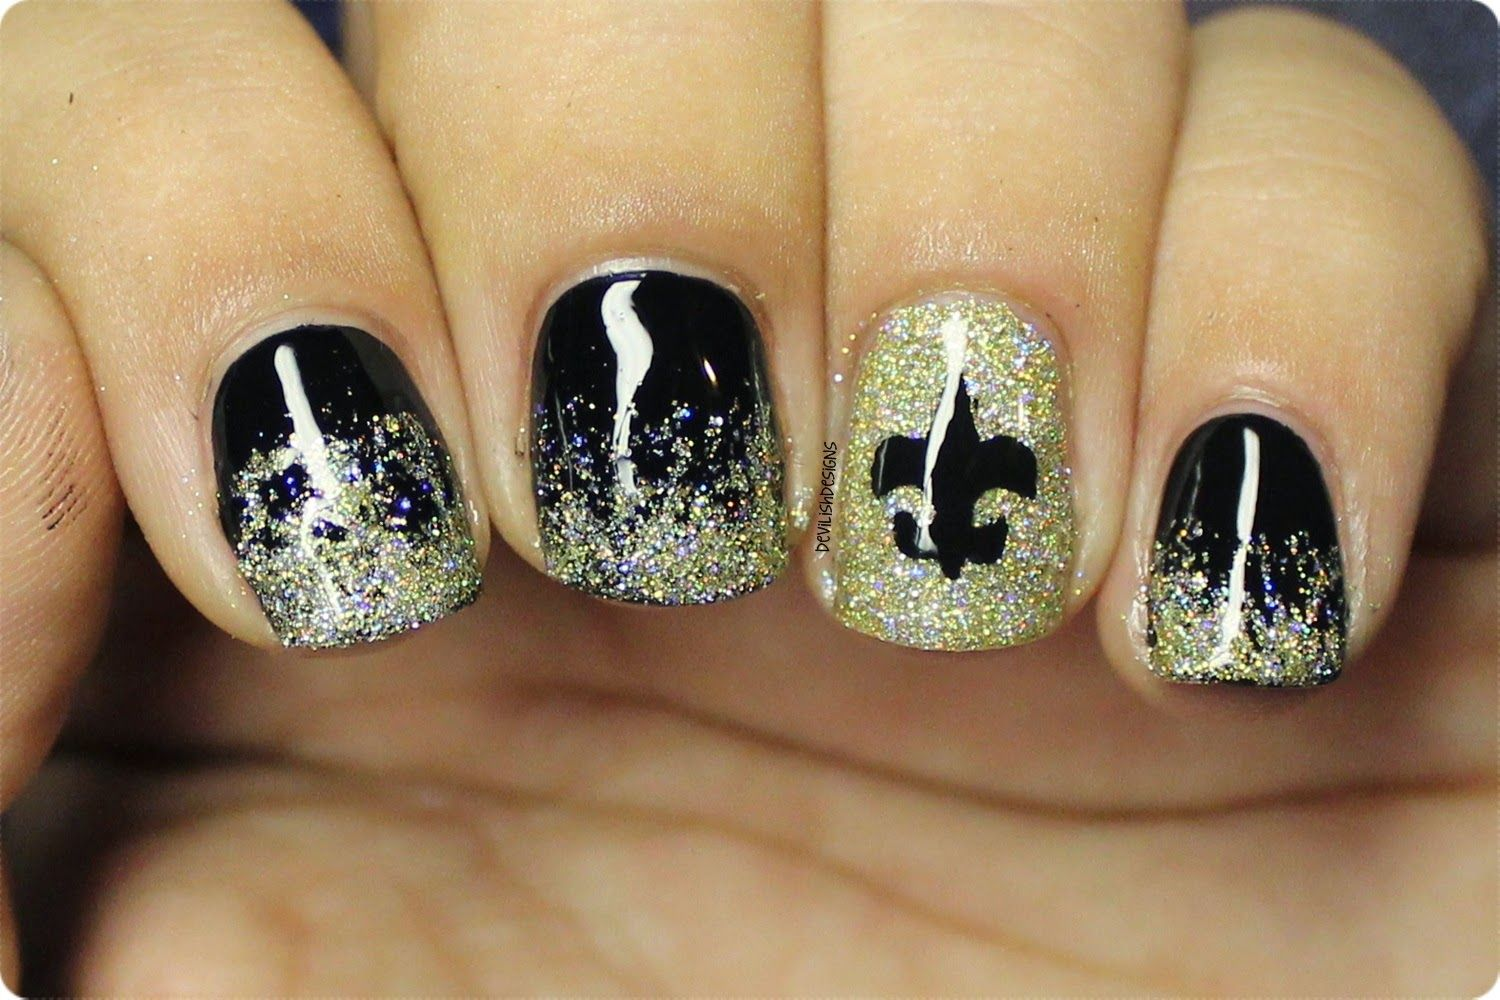 devilishdesigns: Sunday Football: New Orleans Saints | salon nail ...